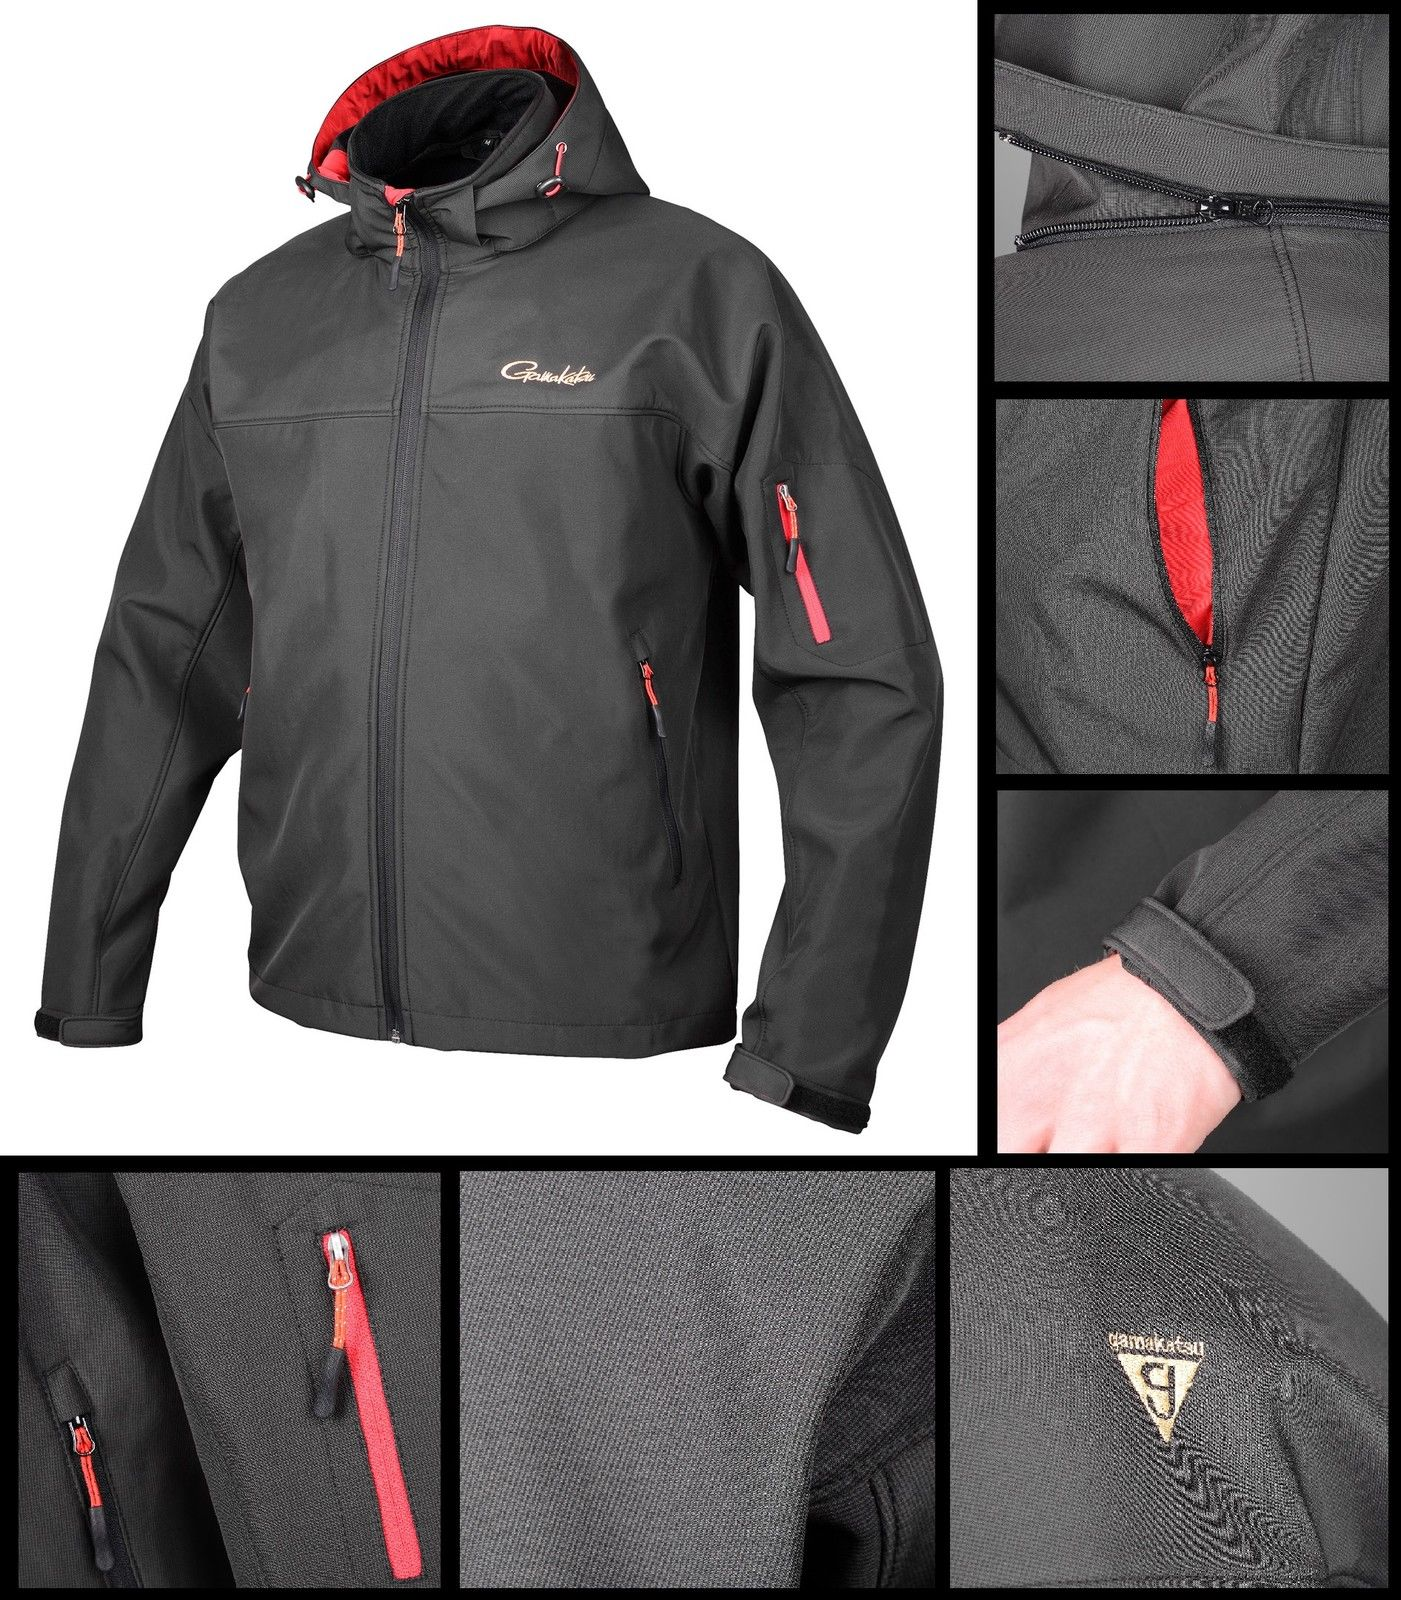 Gamakatsu Bunda Softshell XL